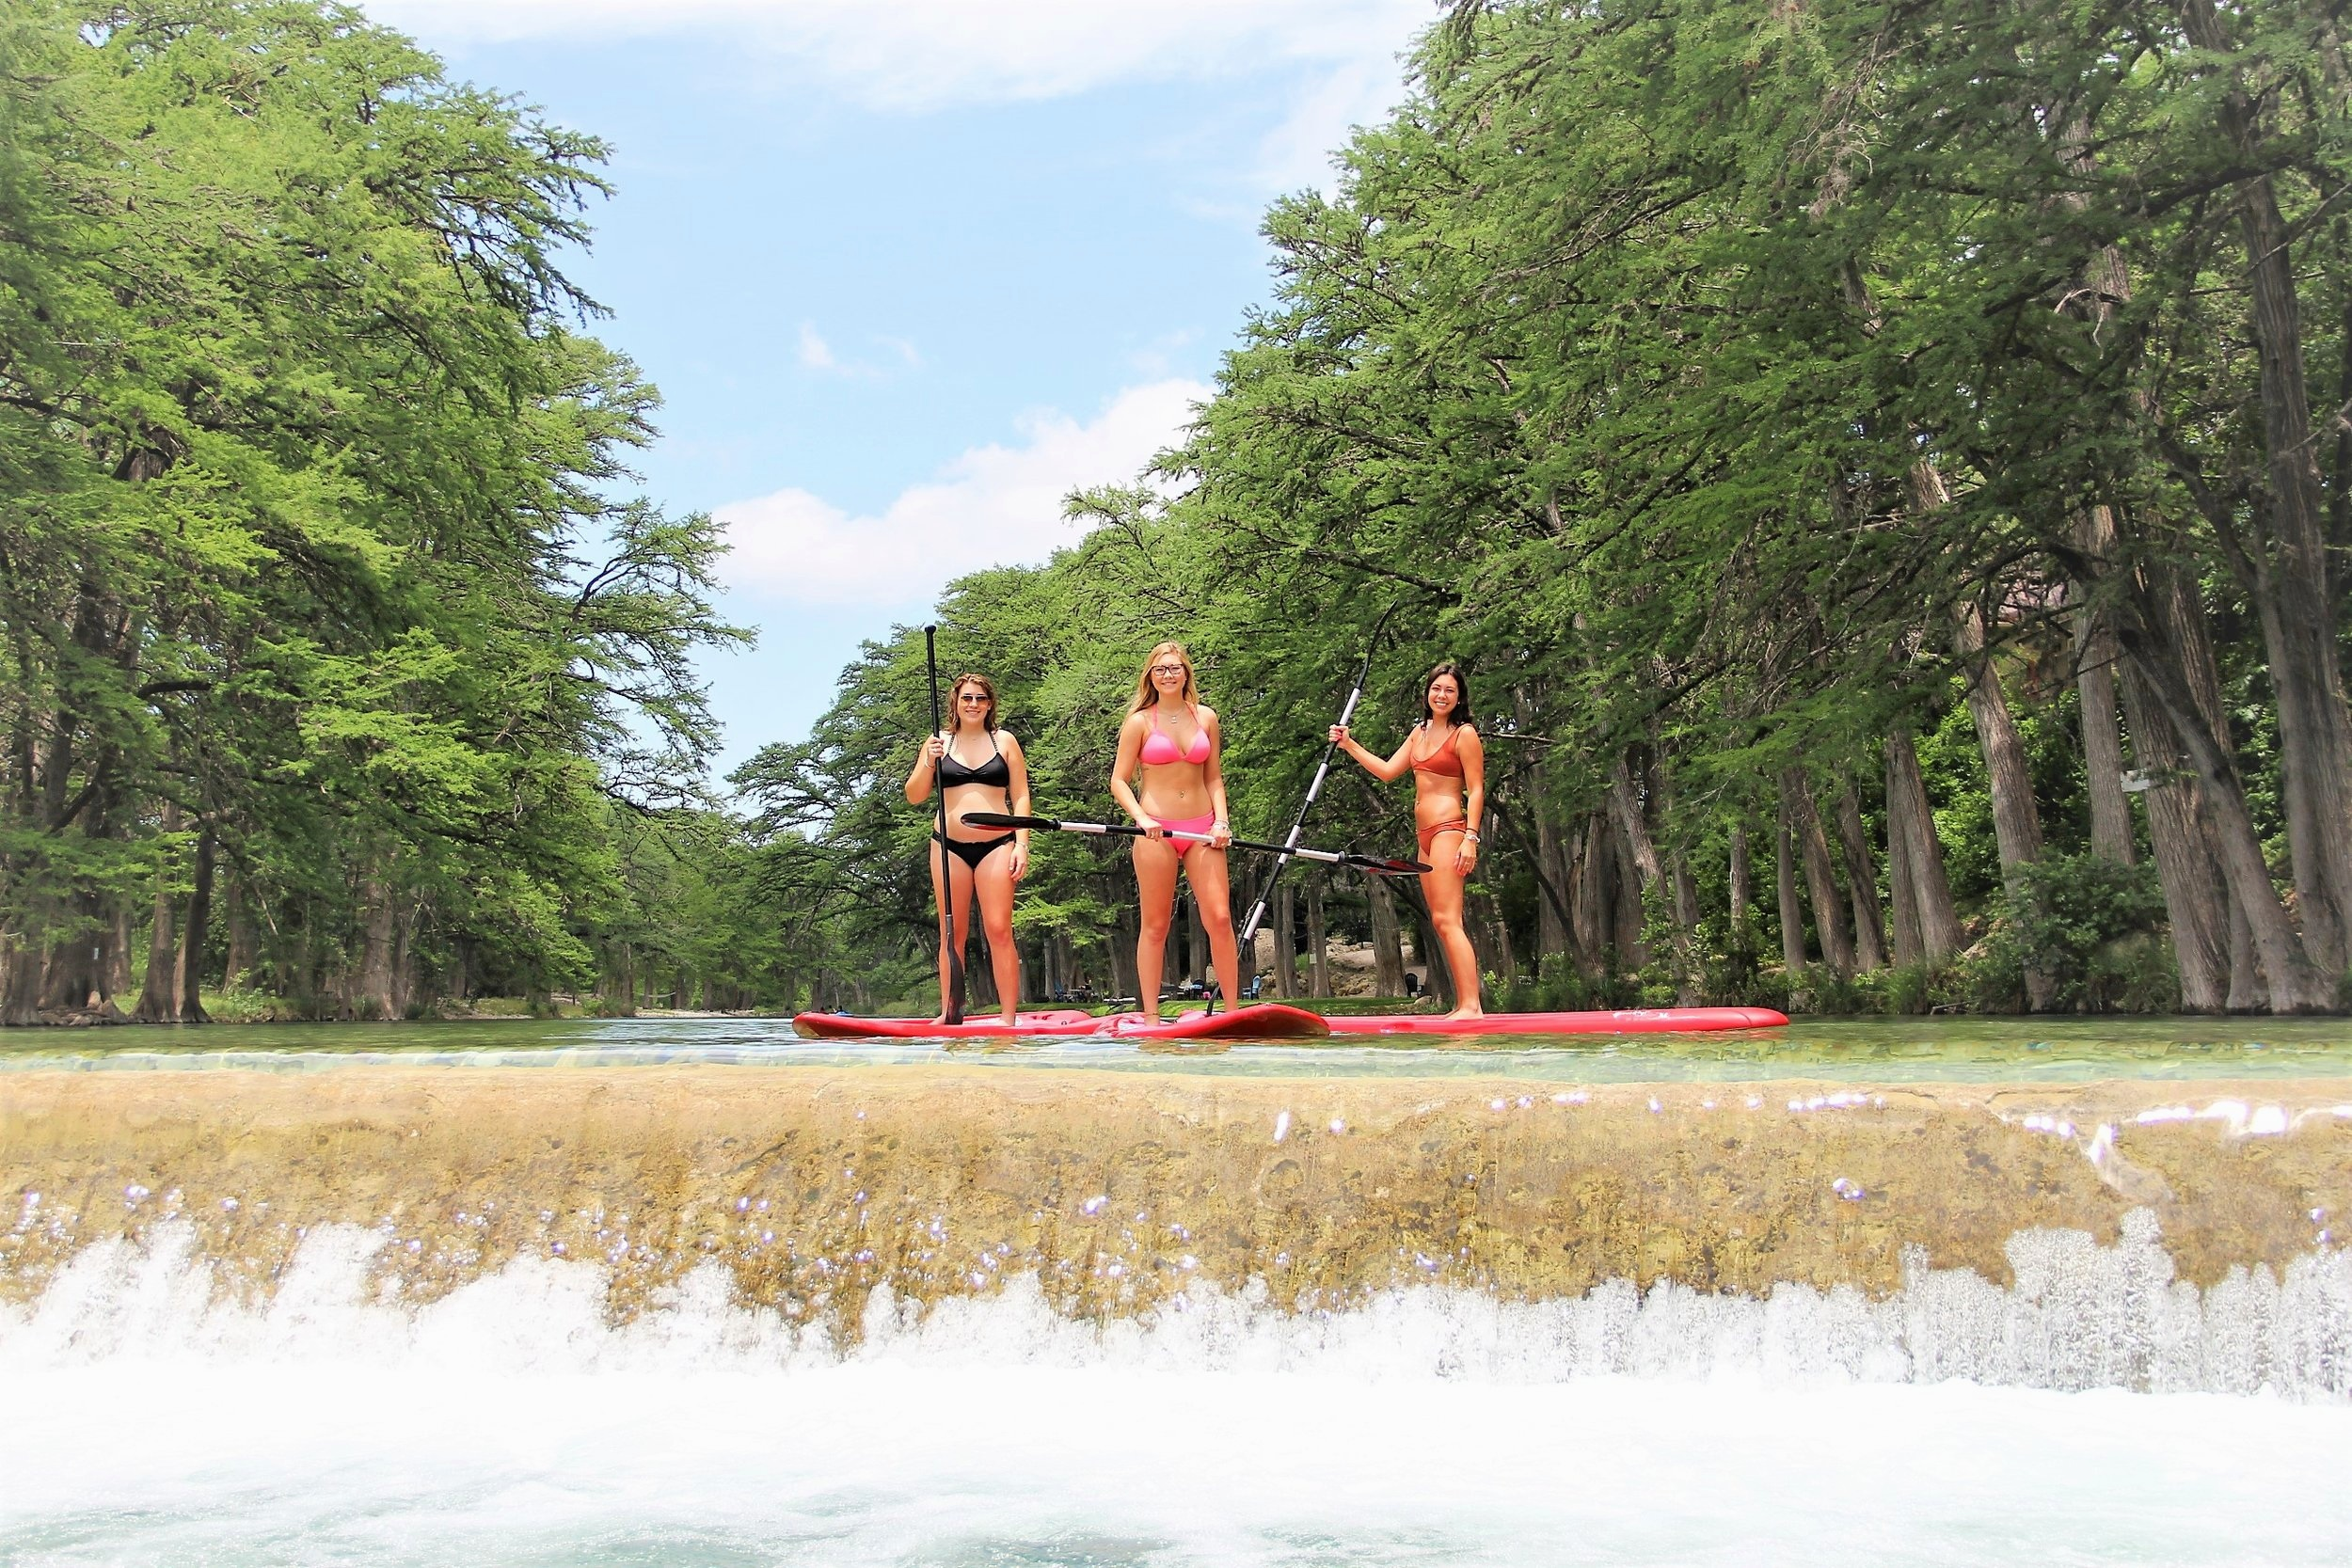 Paddleboards on the Frio